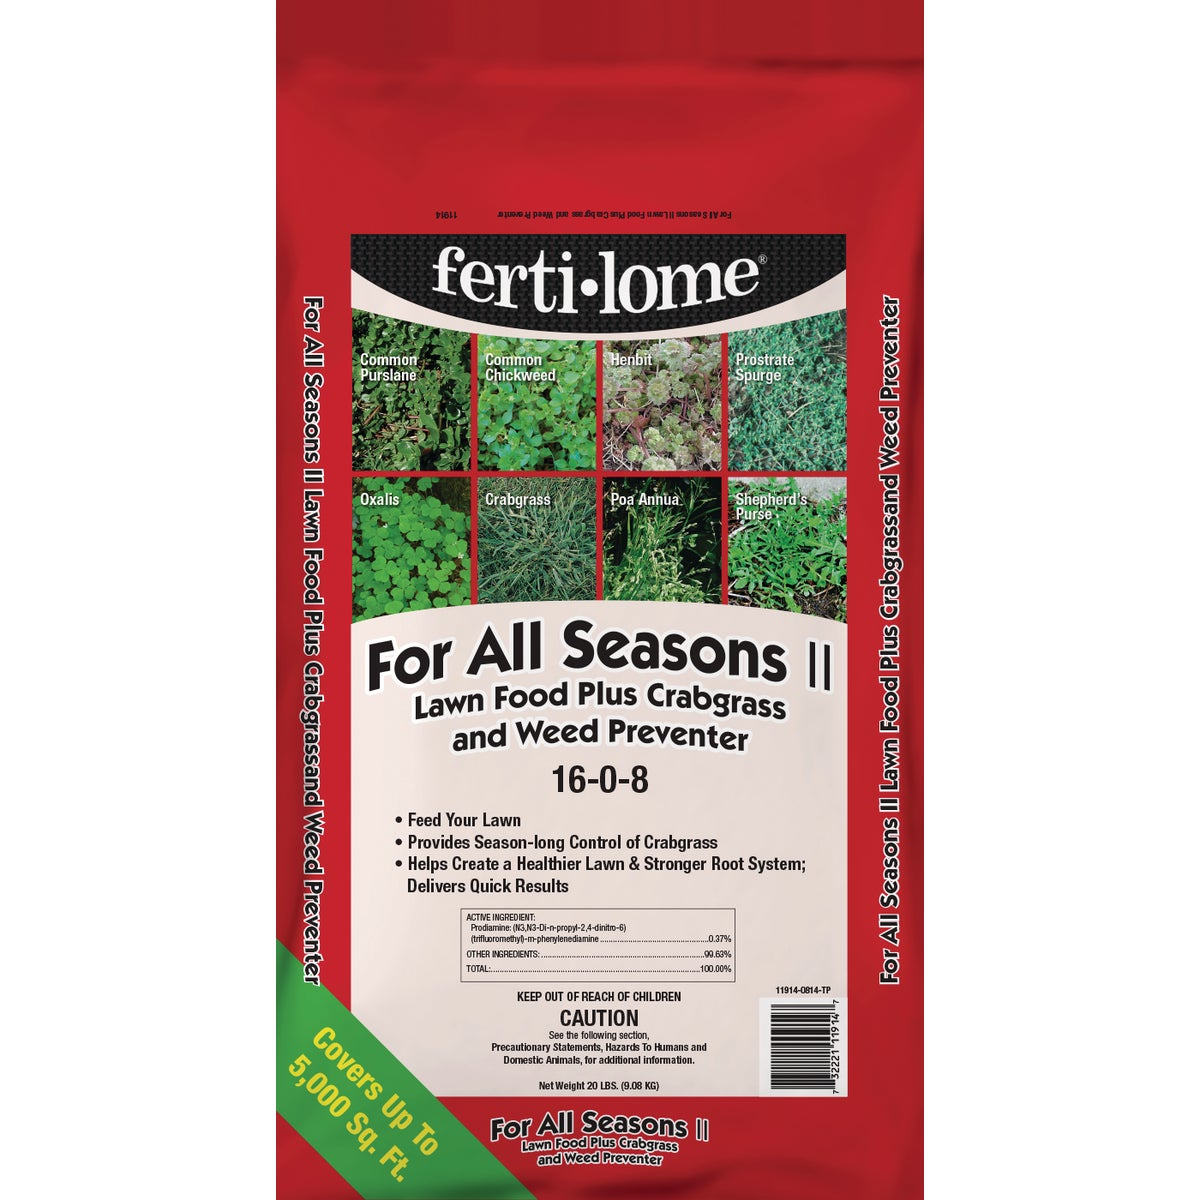 20LB ALL SEAS LAWN FOOD+ - 11914 by Vpg Fertilome